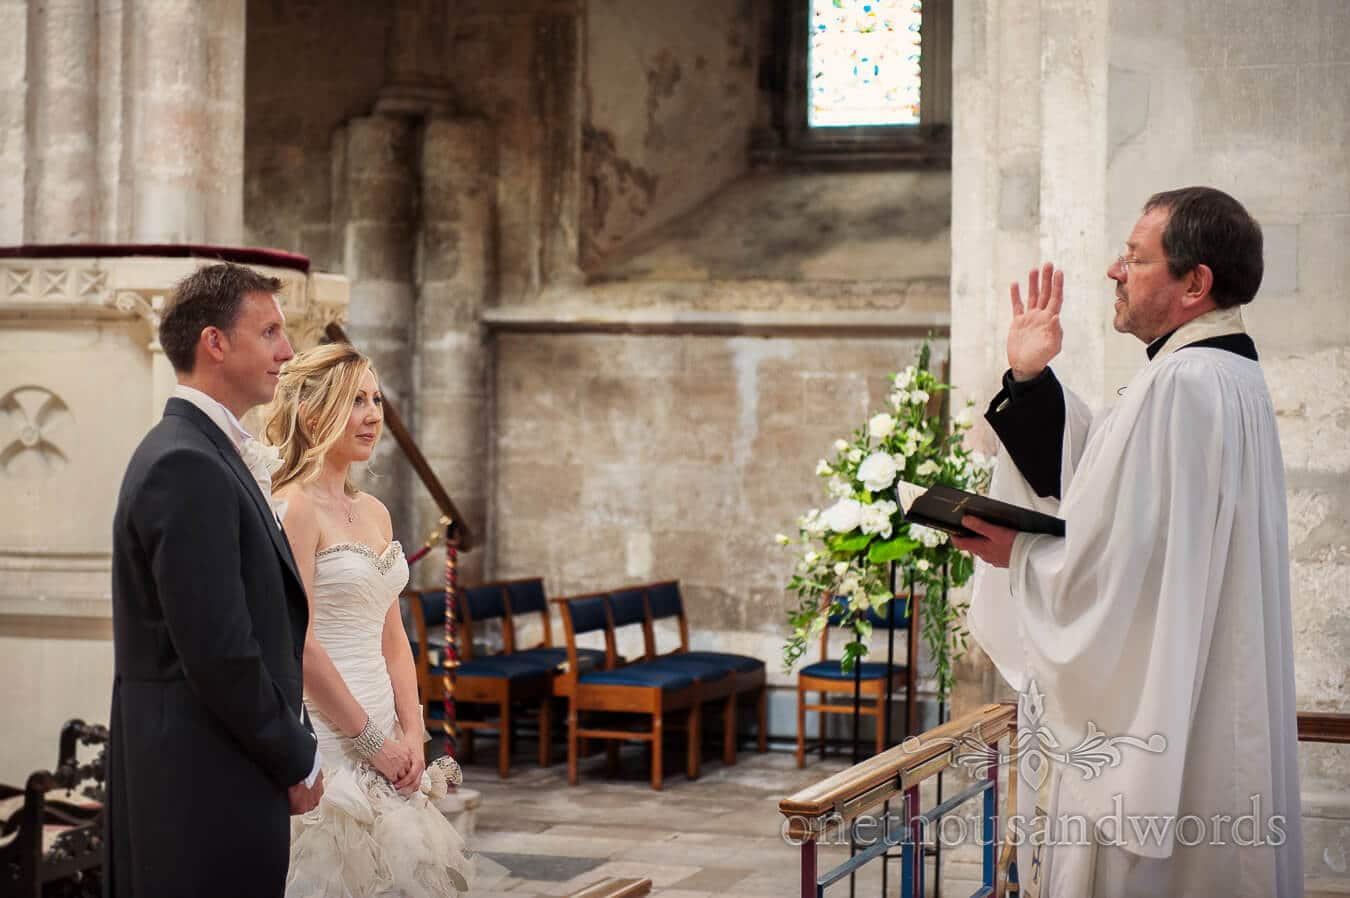 Christchurch Priory wedding ceremony blessings